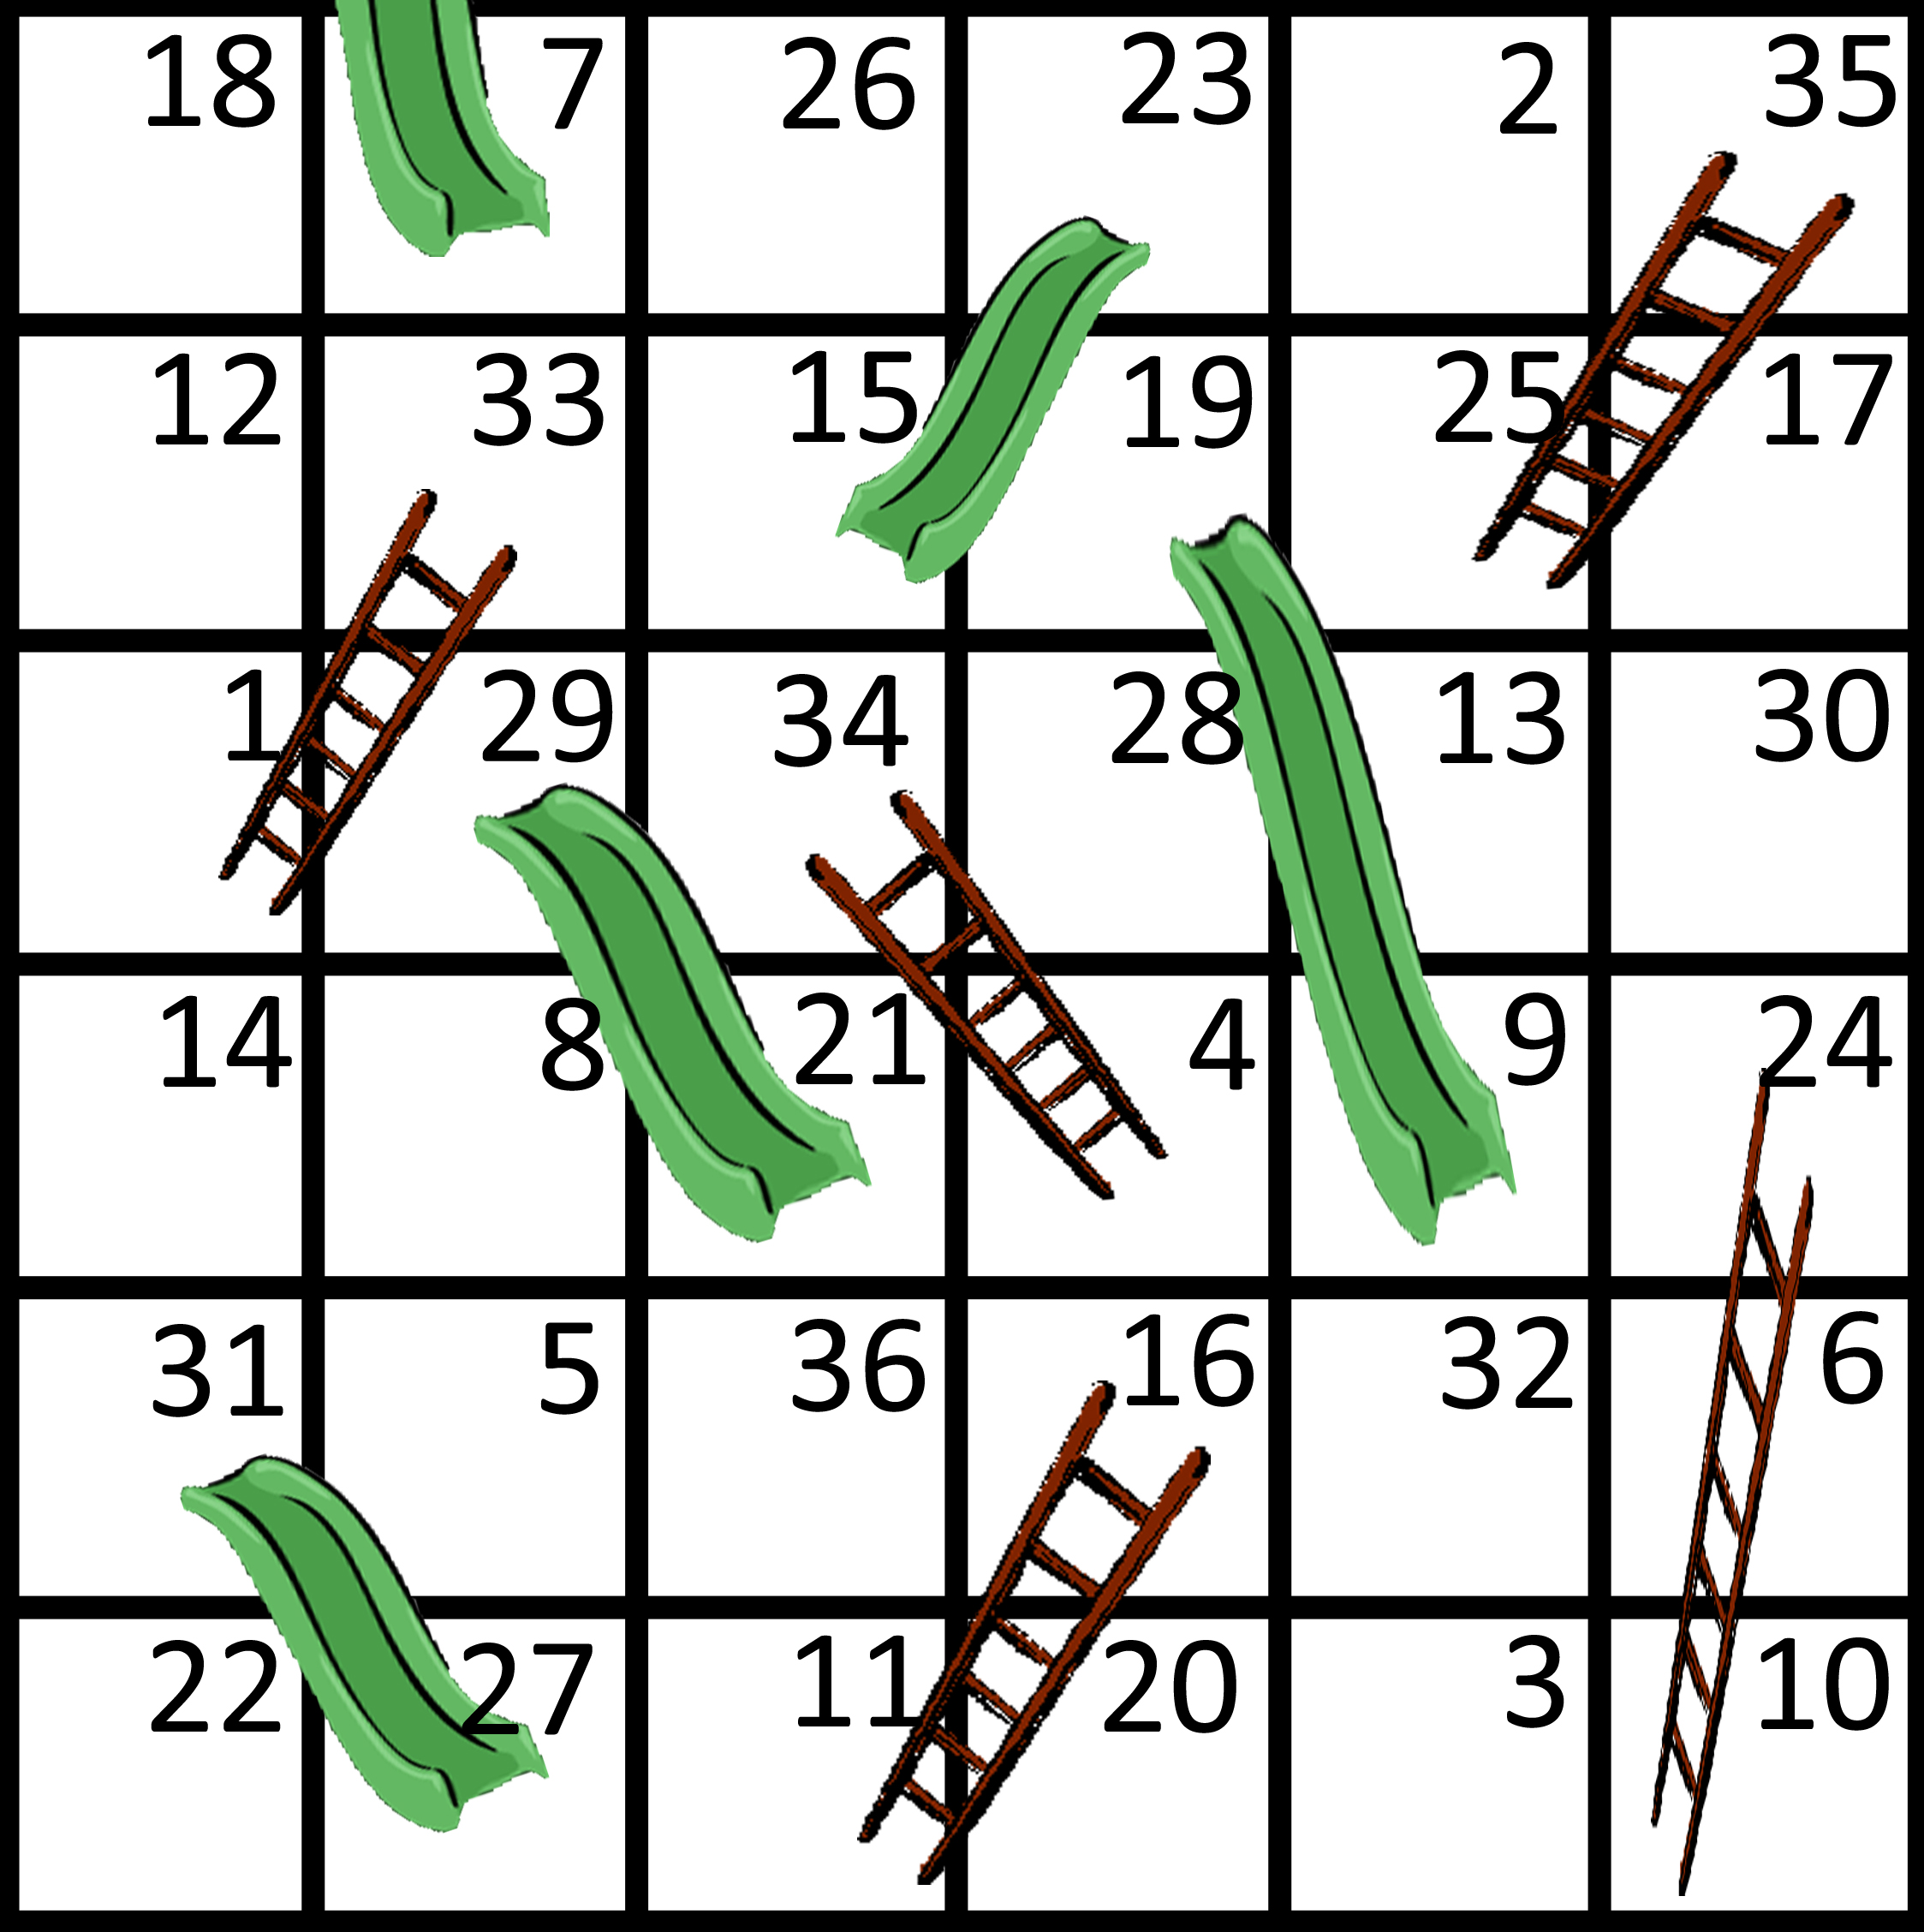 Free coloring pages of chutes and ladders for Chutes and ladders board game template